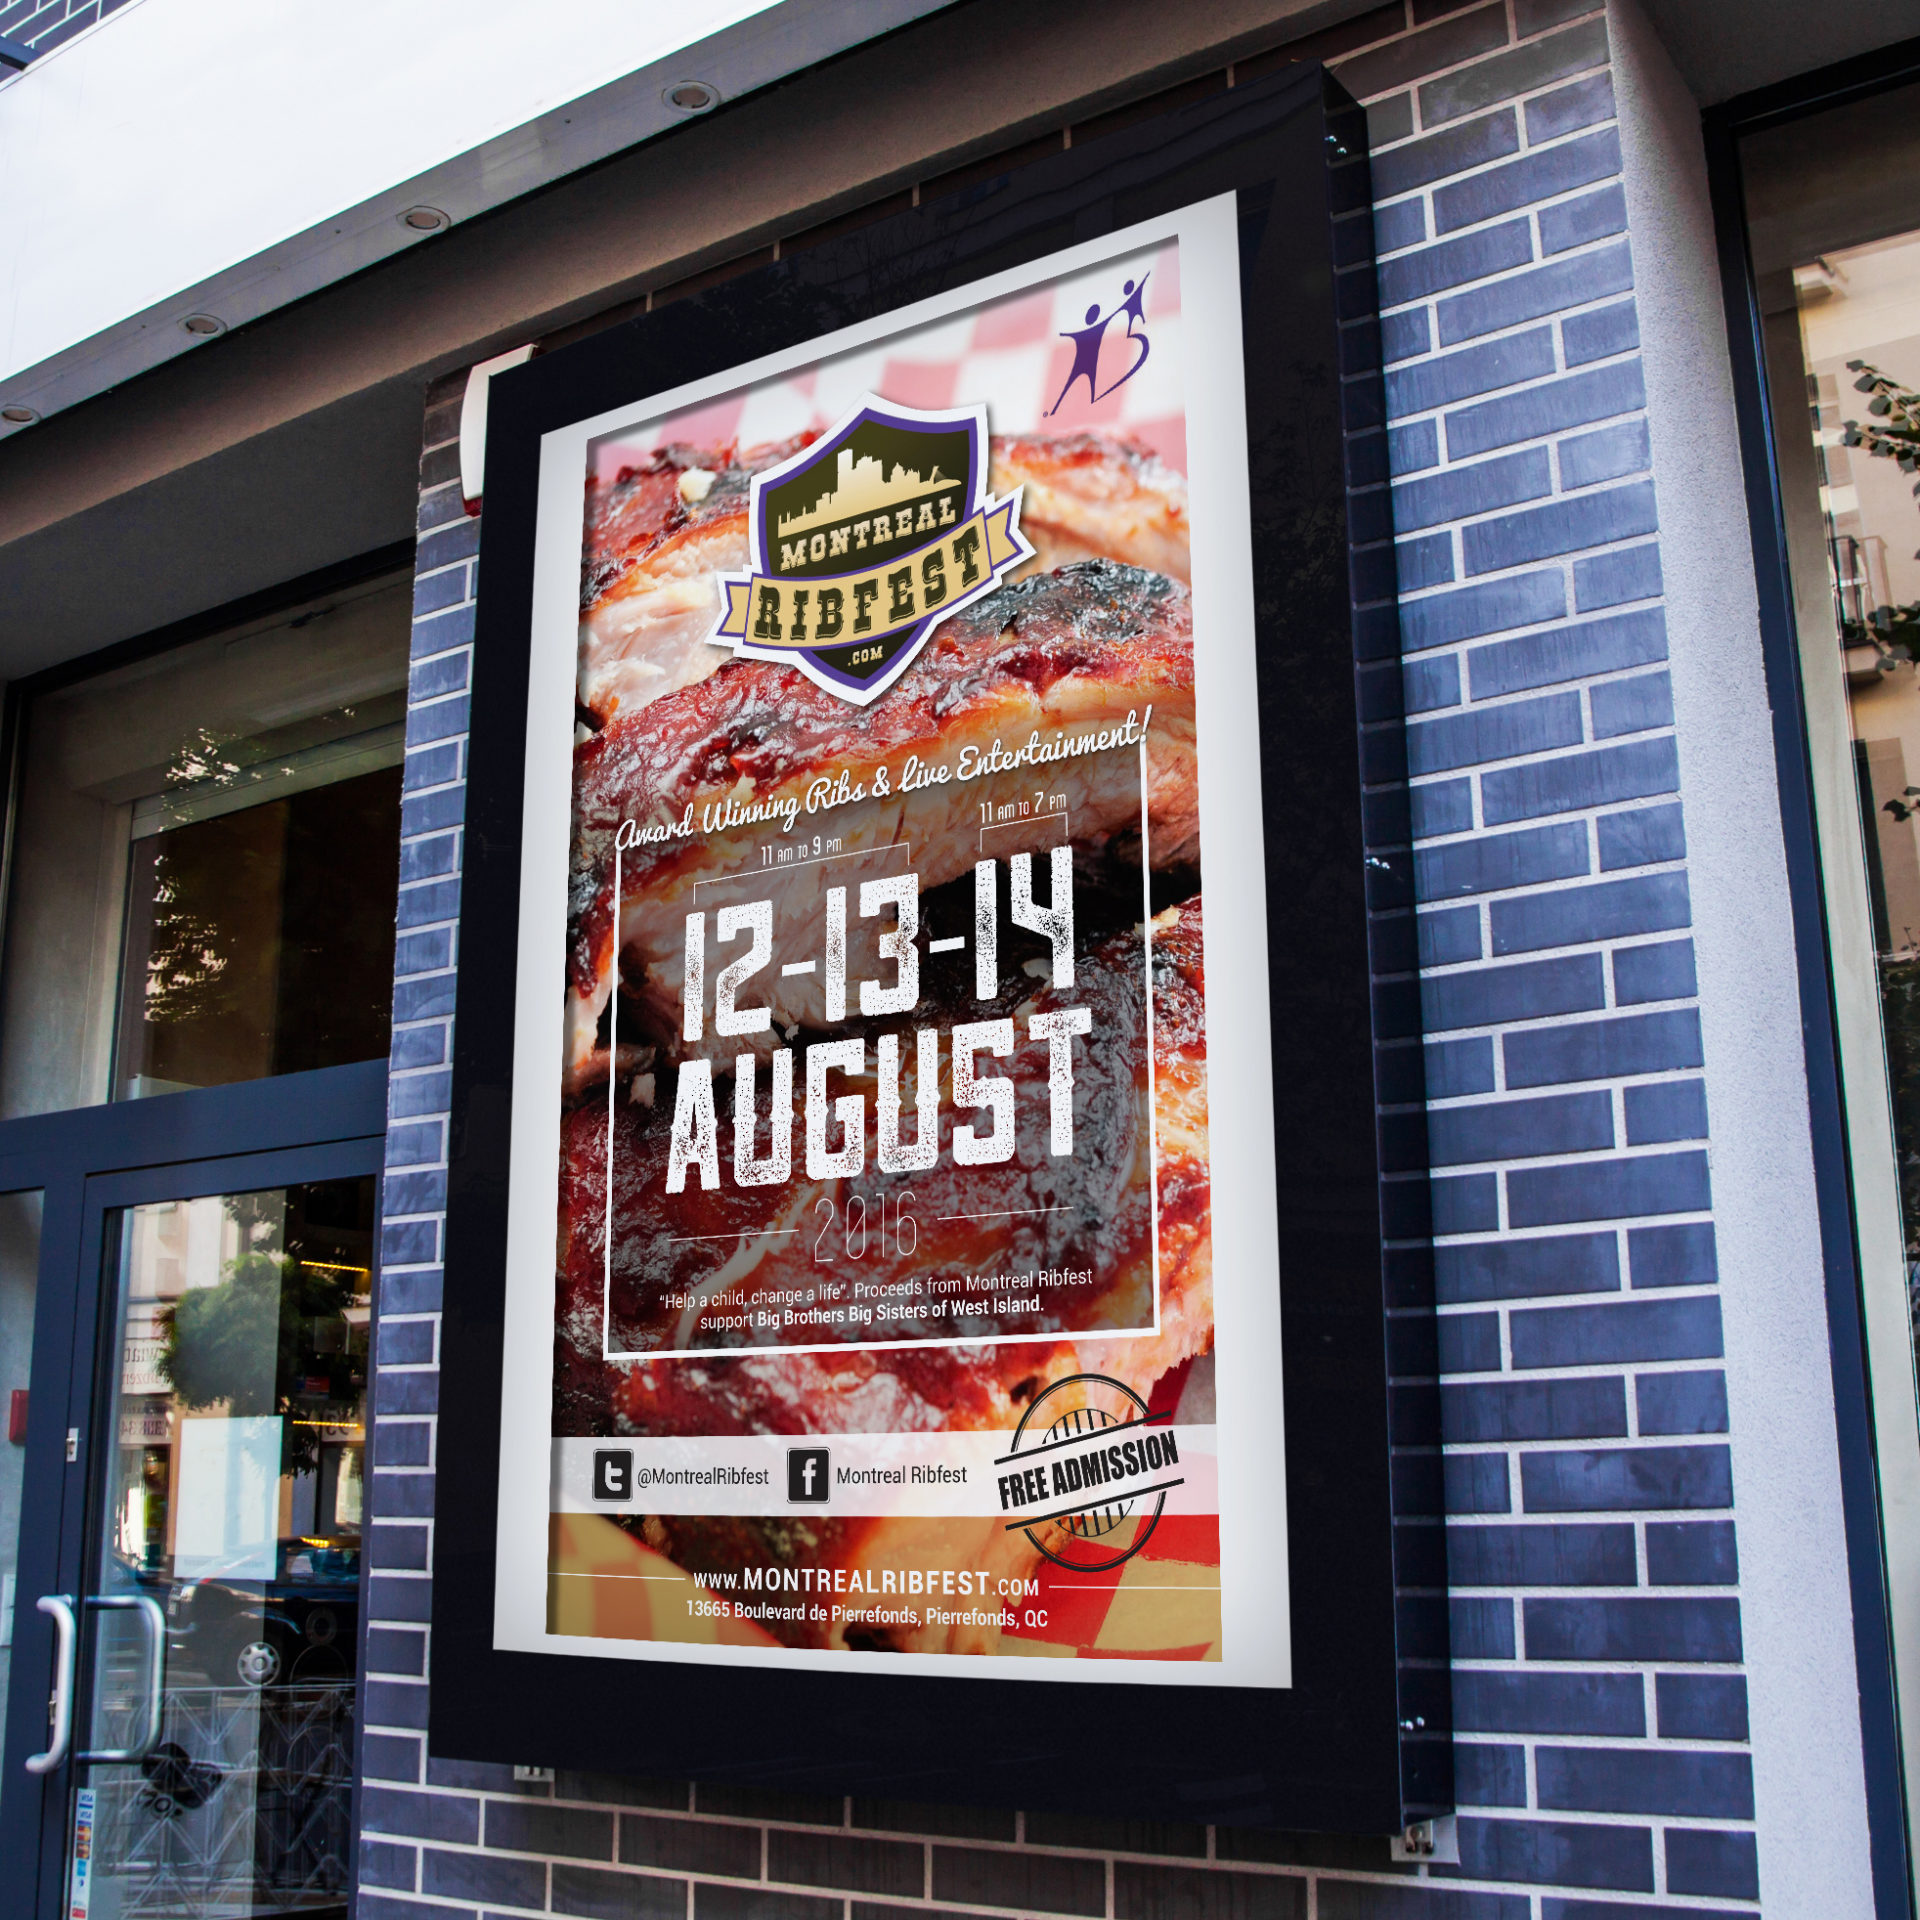 Montreal's West Island Ribfest 2016 advertisement on the outside of building with grey bricks.